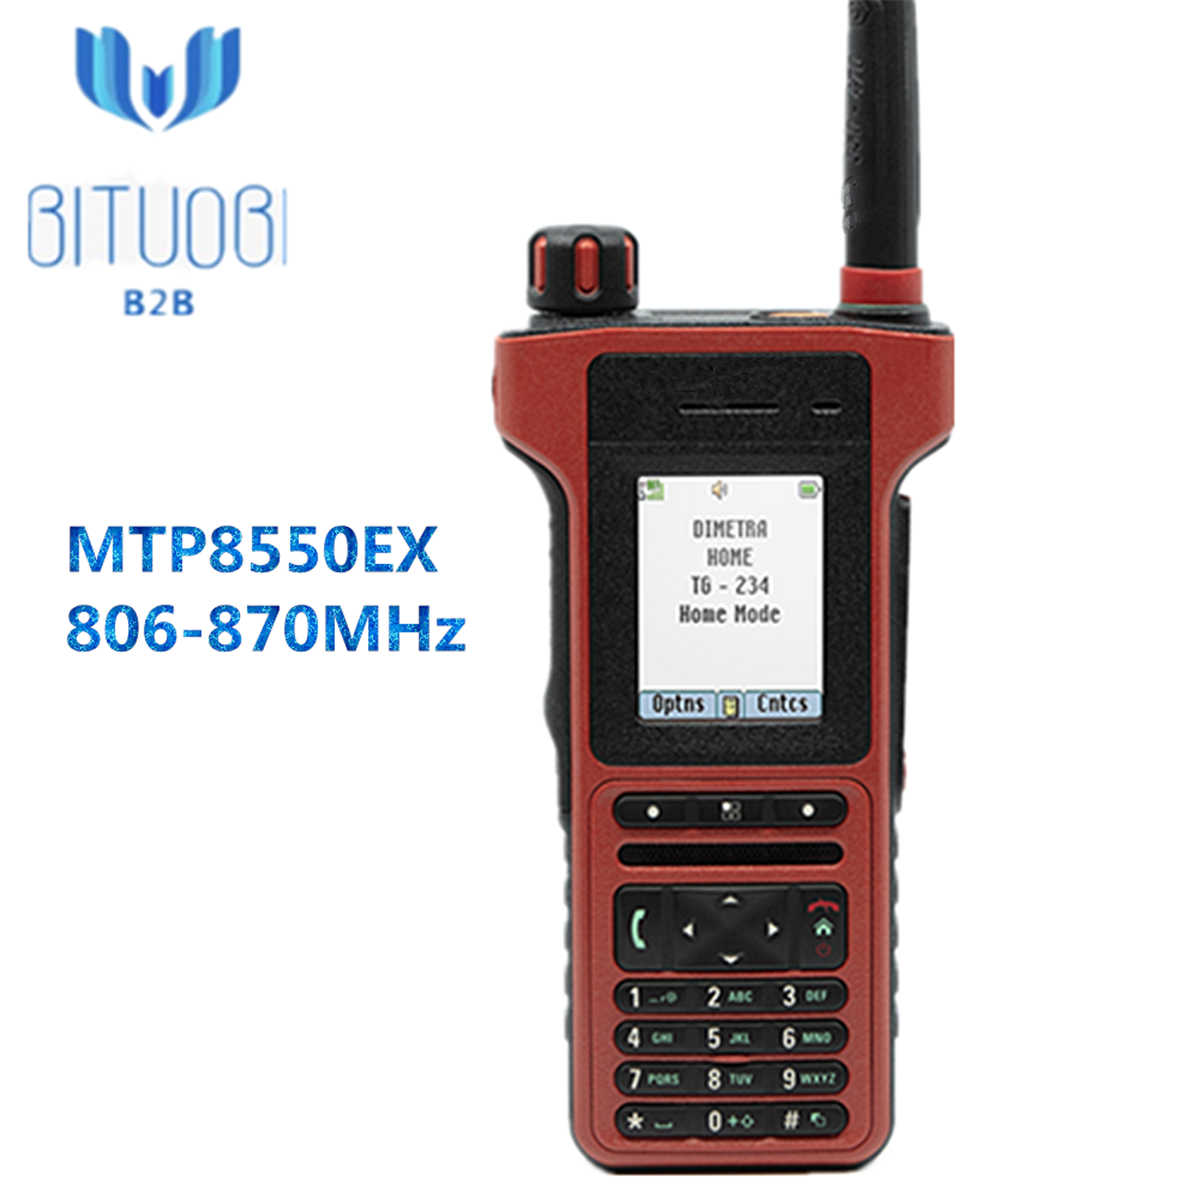 MTP8550EX Tetra radio 806-870MHz walkie talkie with Easier to use Bluetooth TEA1 TEA2 TEA3